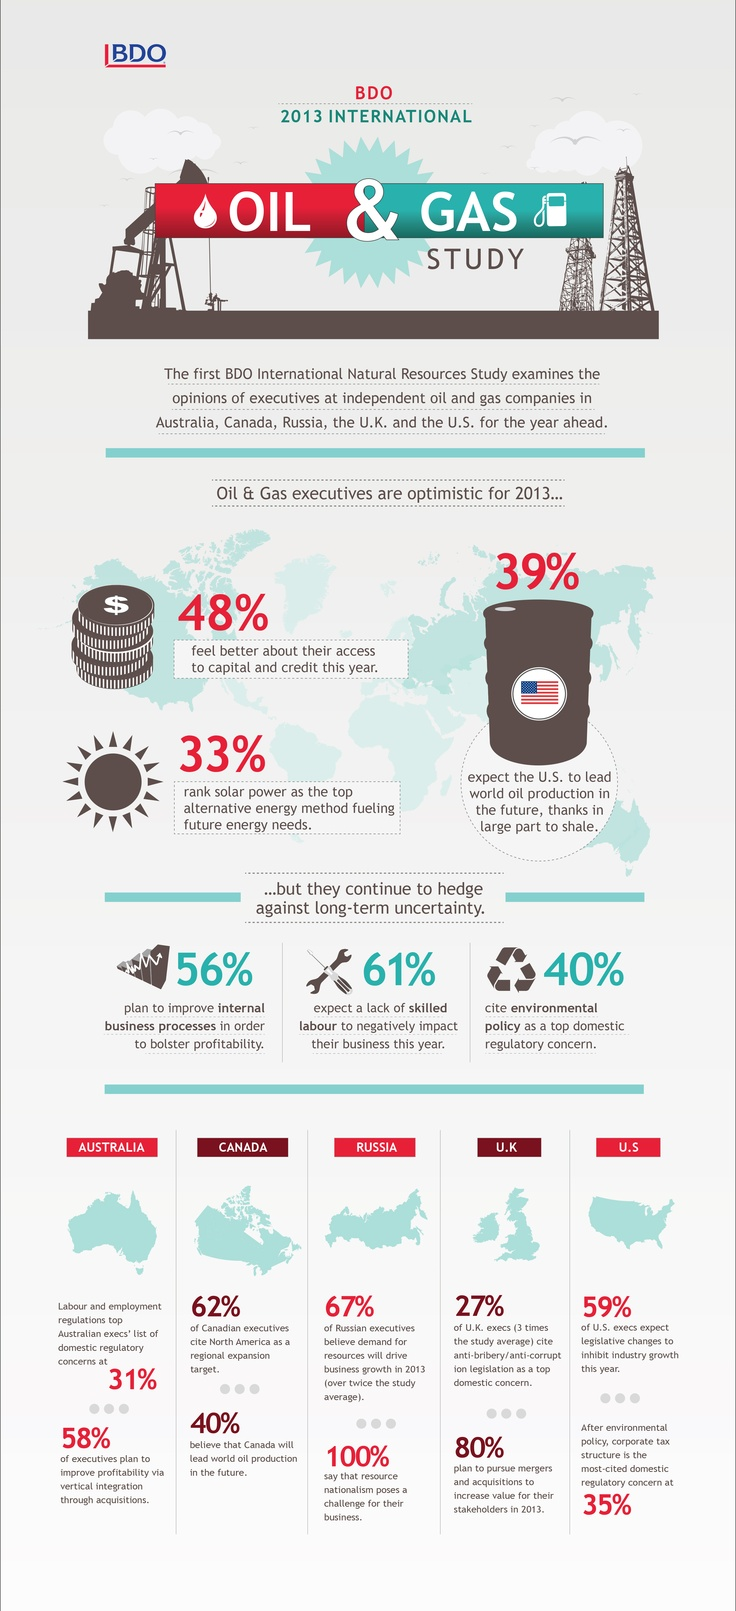 BDO 2013 International Oil & Gas Study #infographic